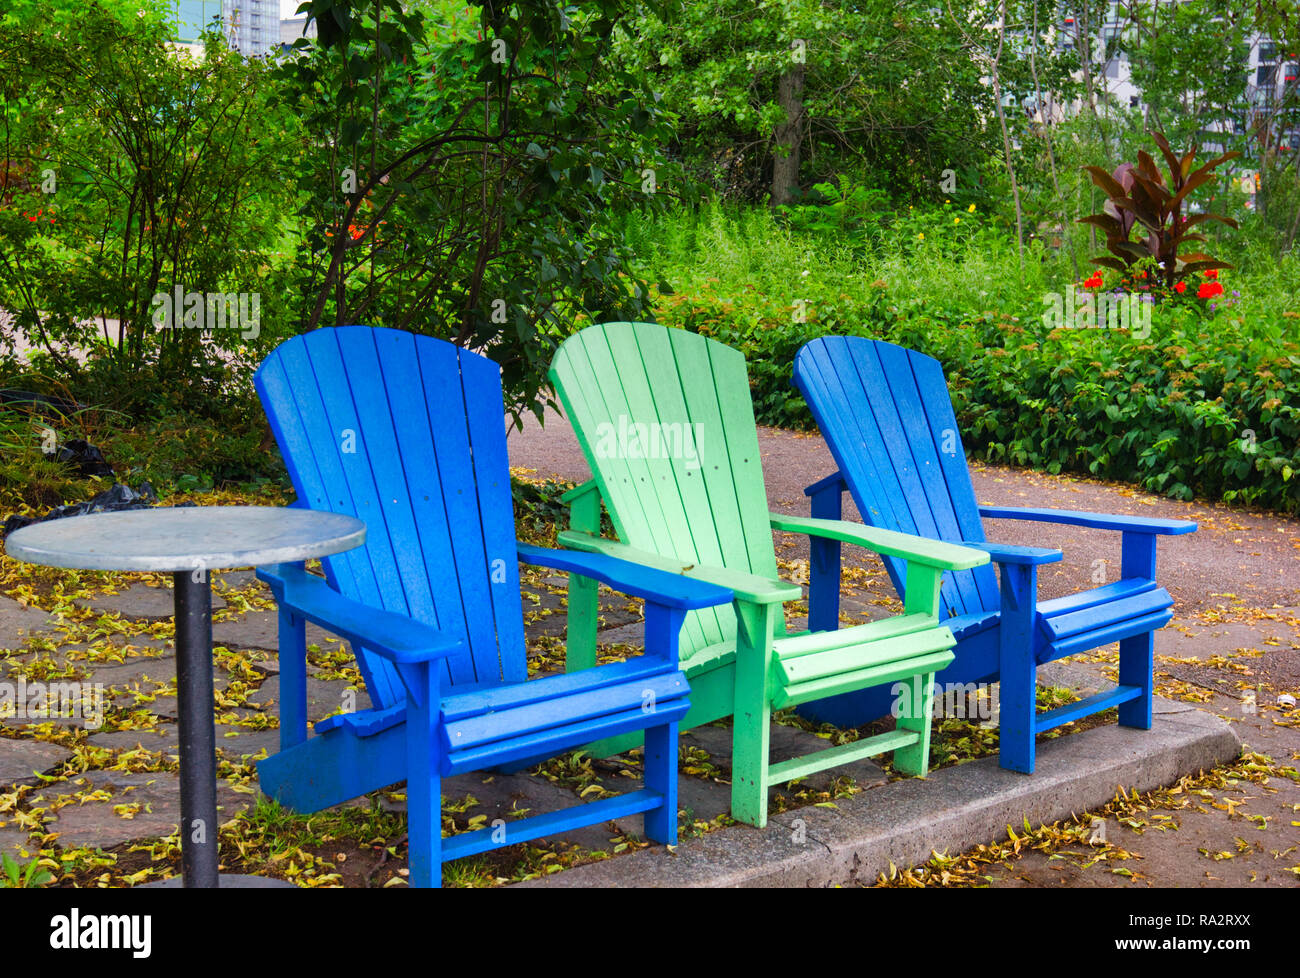 Three empty Adirondack chairs in park, Toronto, Ontario, Canada - Stock Image